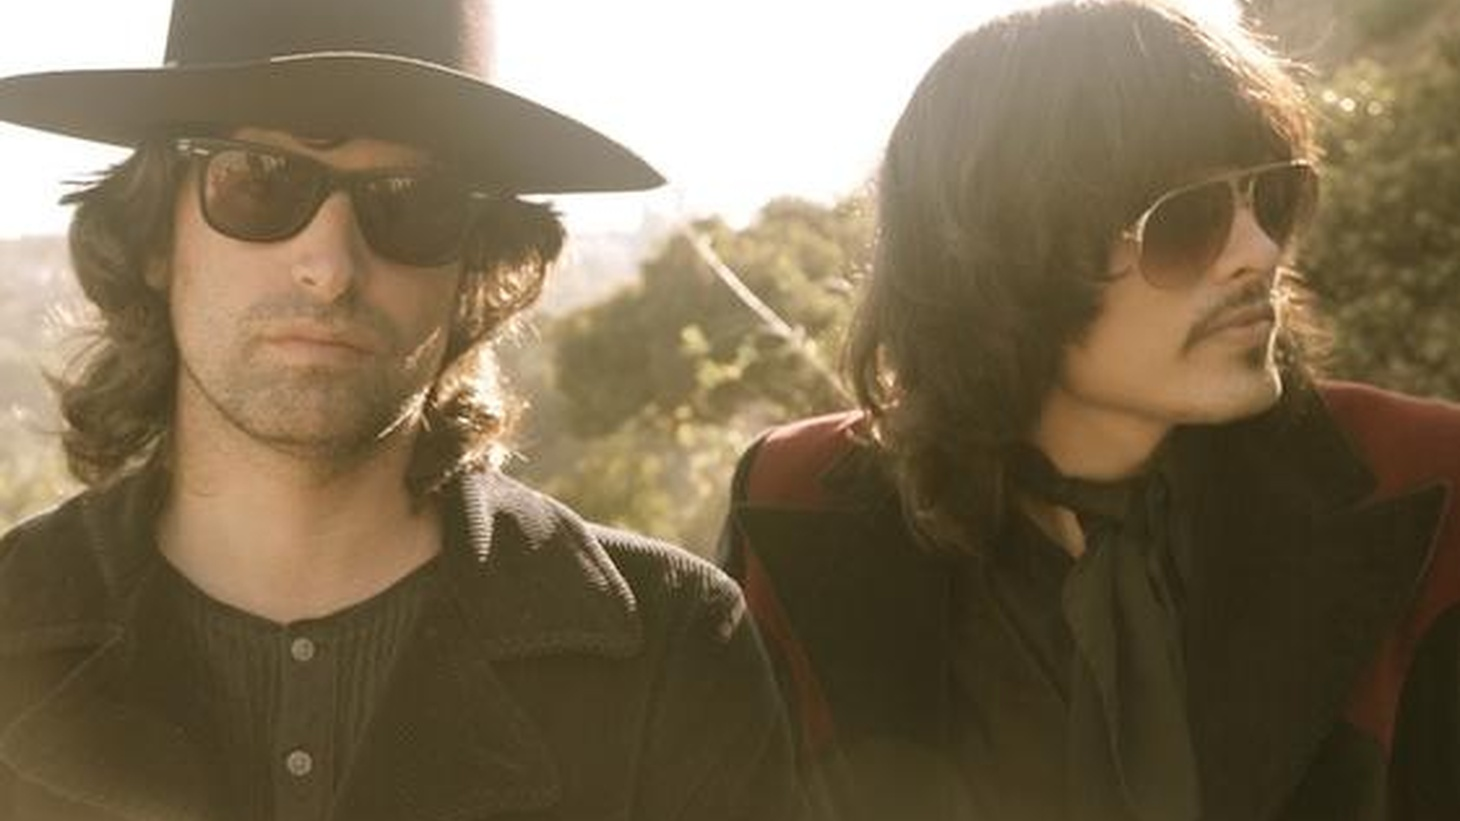 KCRW favorite Pete Yorn teams up with retro fiend J.D. King to create a breezy summer vibe on their debut LP.